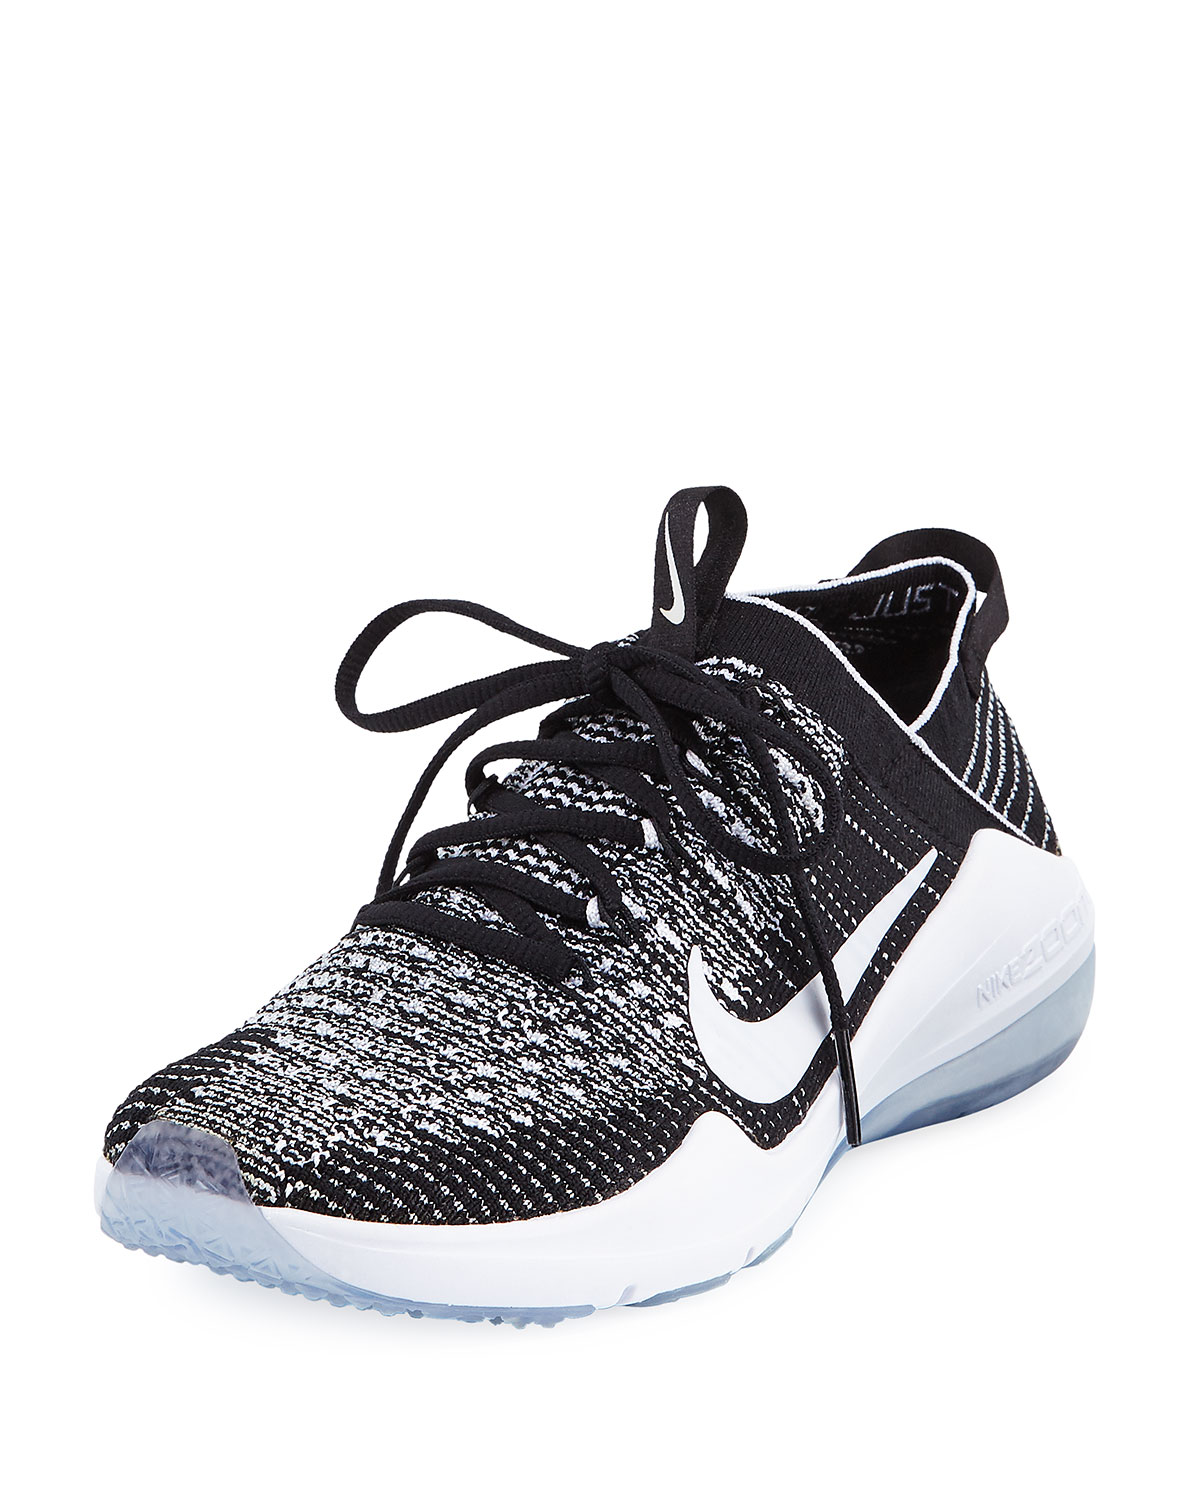 half off c8b4a 29aca NikeAir Zoom Fearless Flyknit 2 Trainer Sneakers